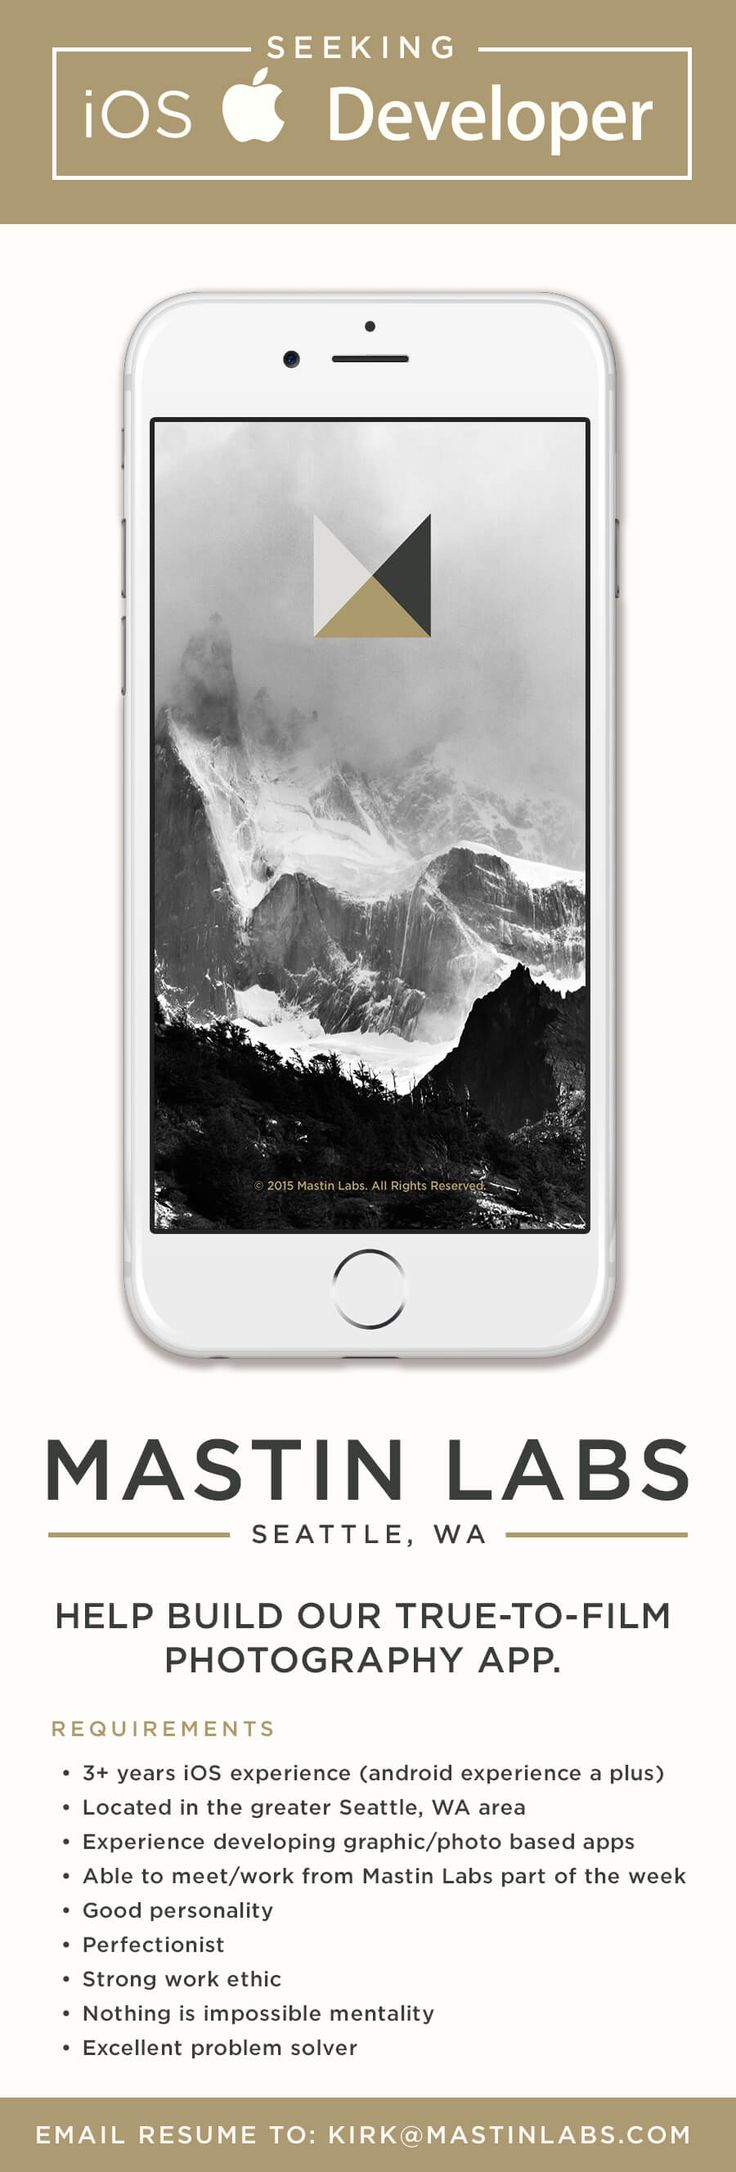 Mastin Labs, makers of the premiere film emulating presets for Adobe Lightroom is seeking an iOS developer to help build a photography app like no other. Mastin Labs is located in the Ballard neighborhood of Seattle and is a fantastic company to work for. I'm working as Art Director/Principal Designer on the app. Come join us and help preserve the look of film for the digital future of mobile photography. - @chadsyme